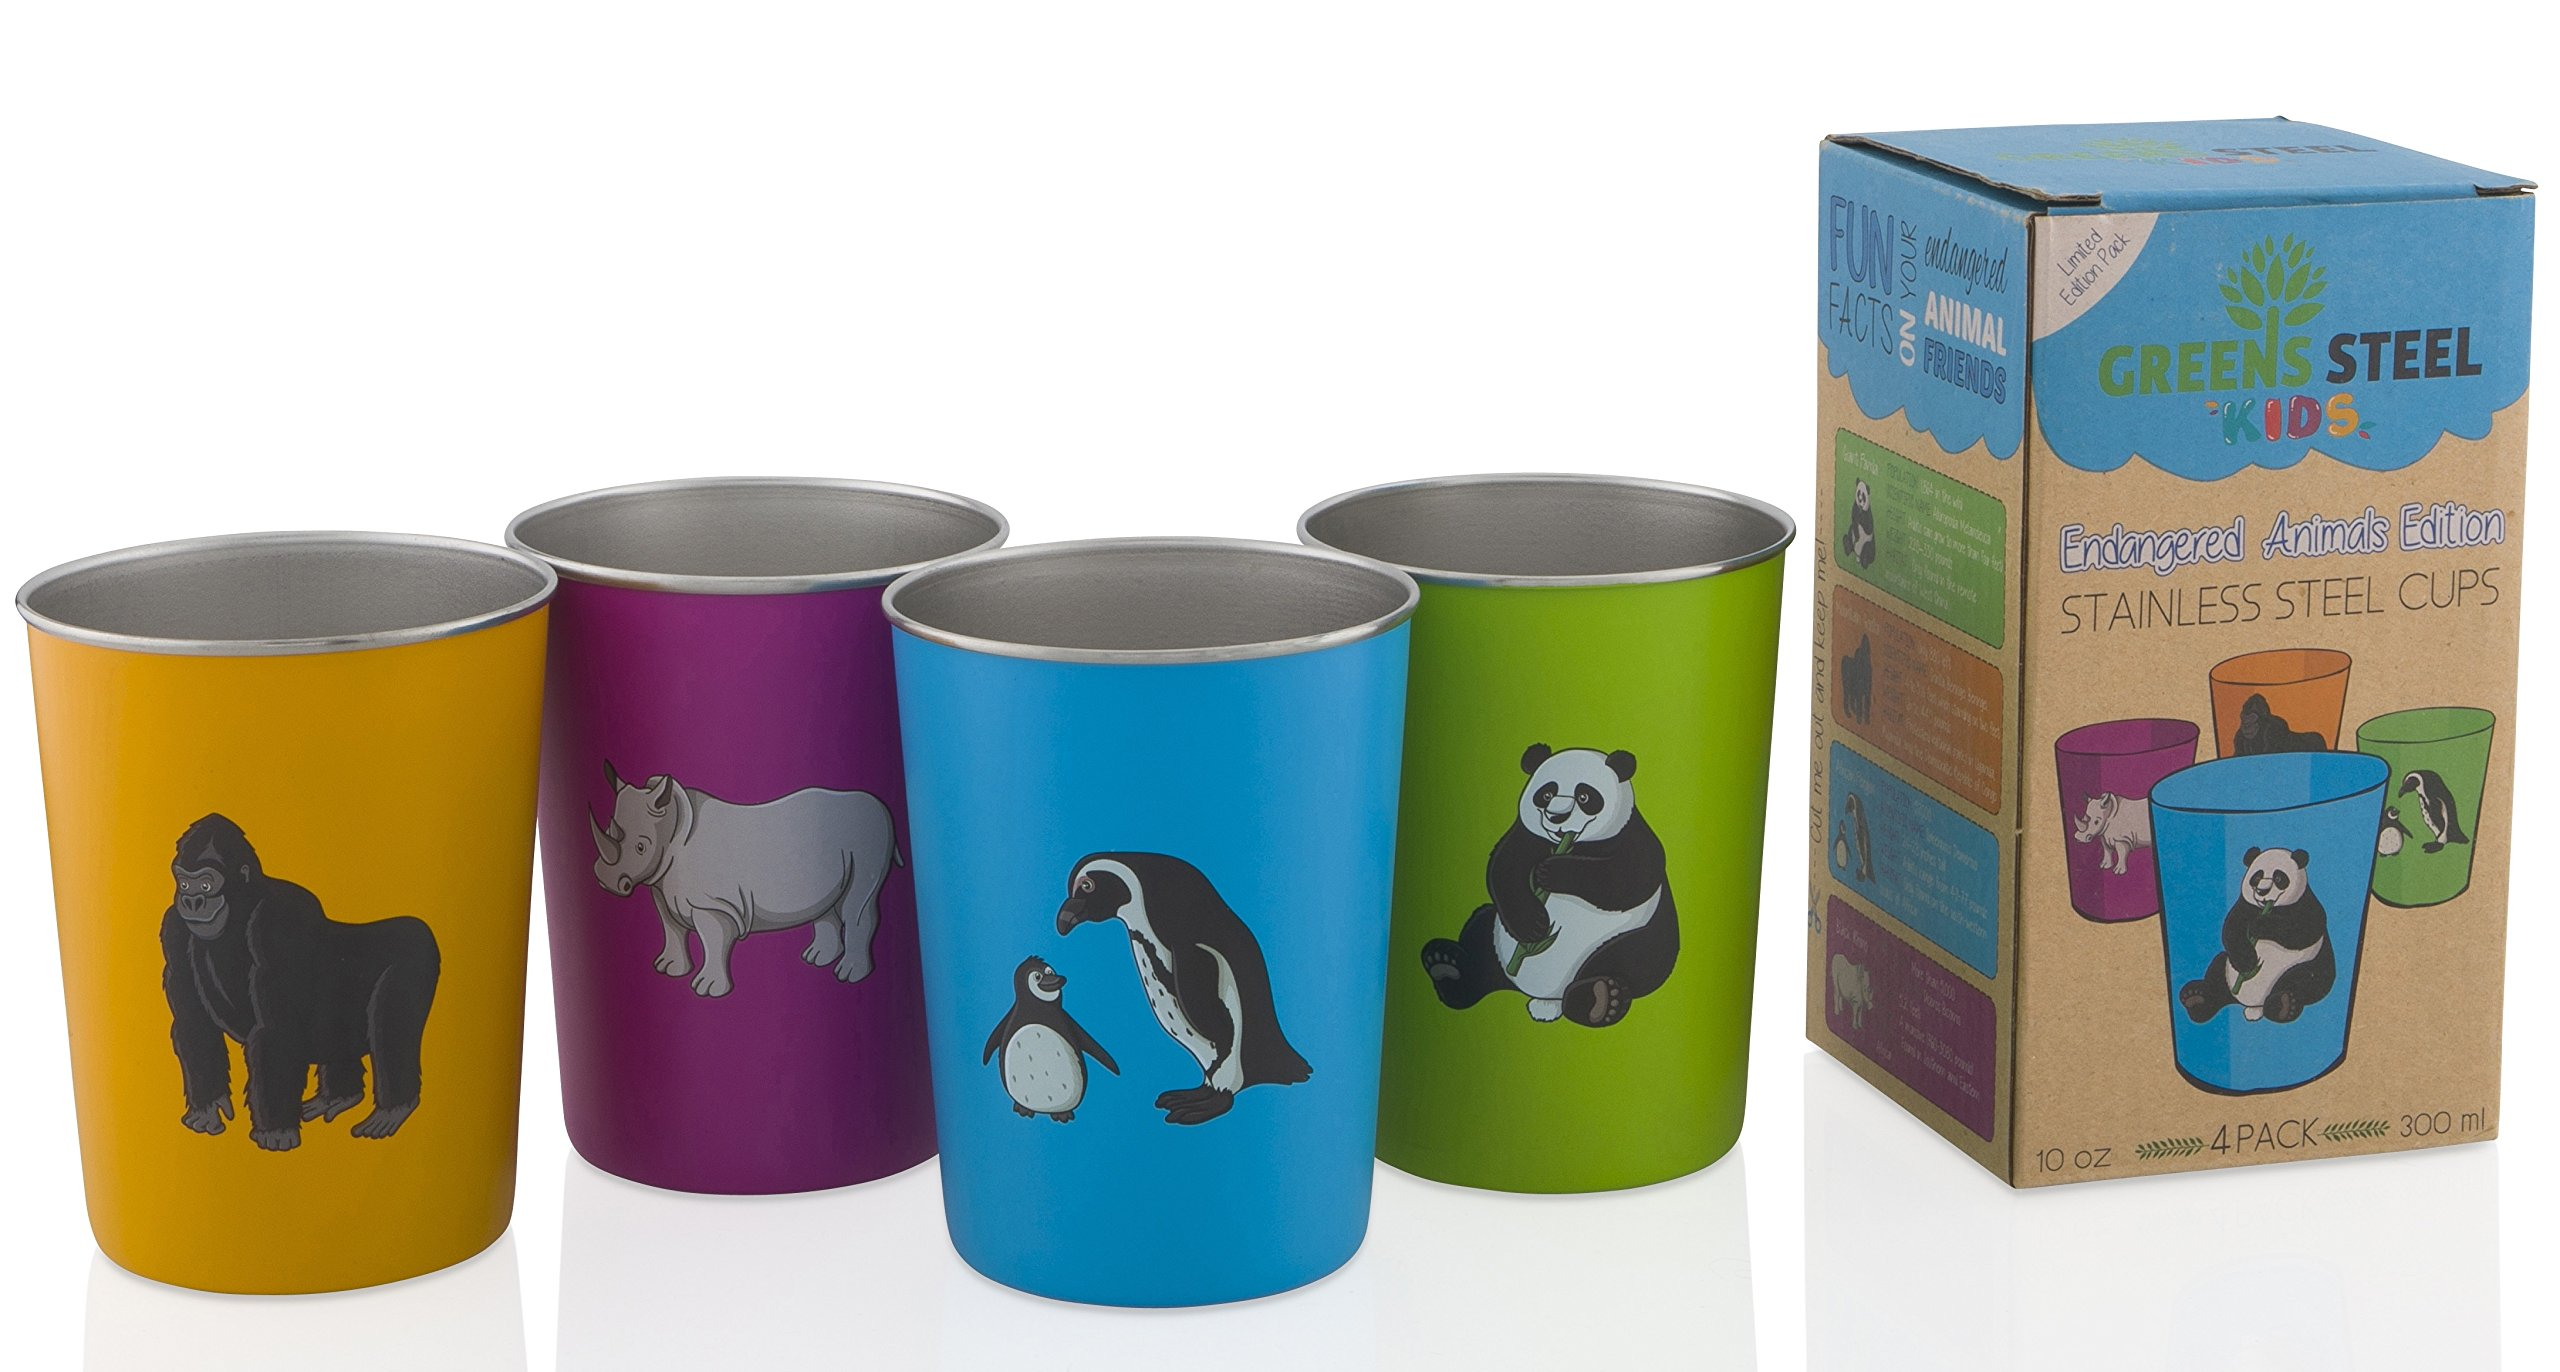 Greens Steel 10oz Stainless Steel Cups for Kids - Metal Cup - Fun Animal Edition (4 Pack)